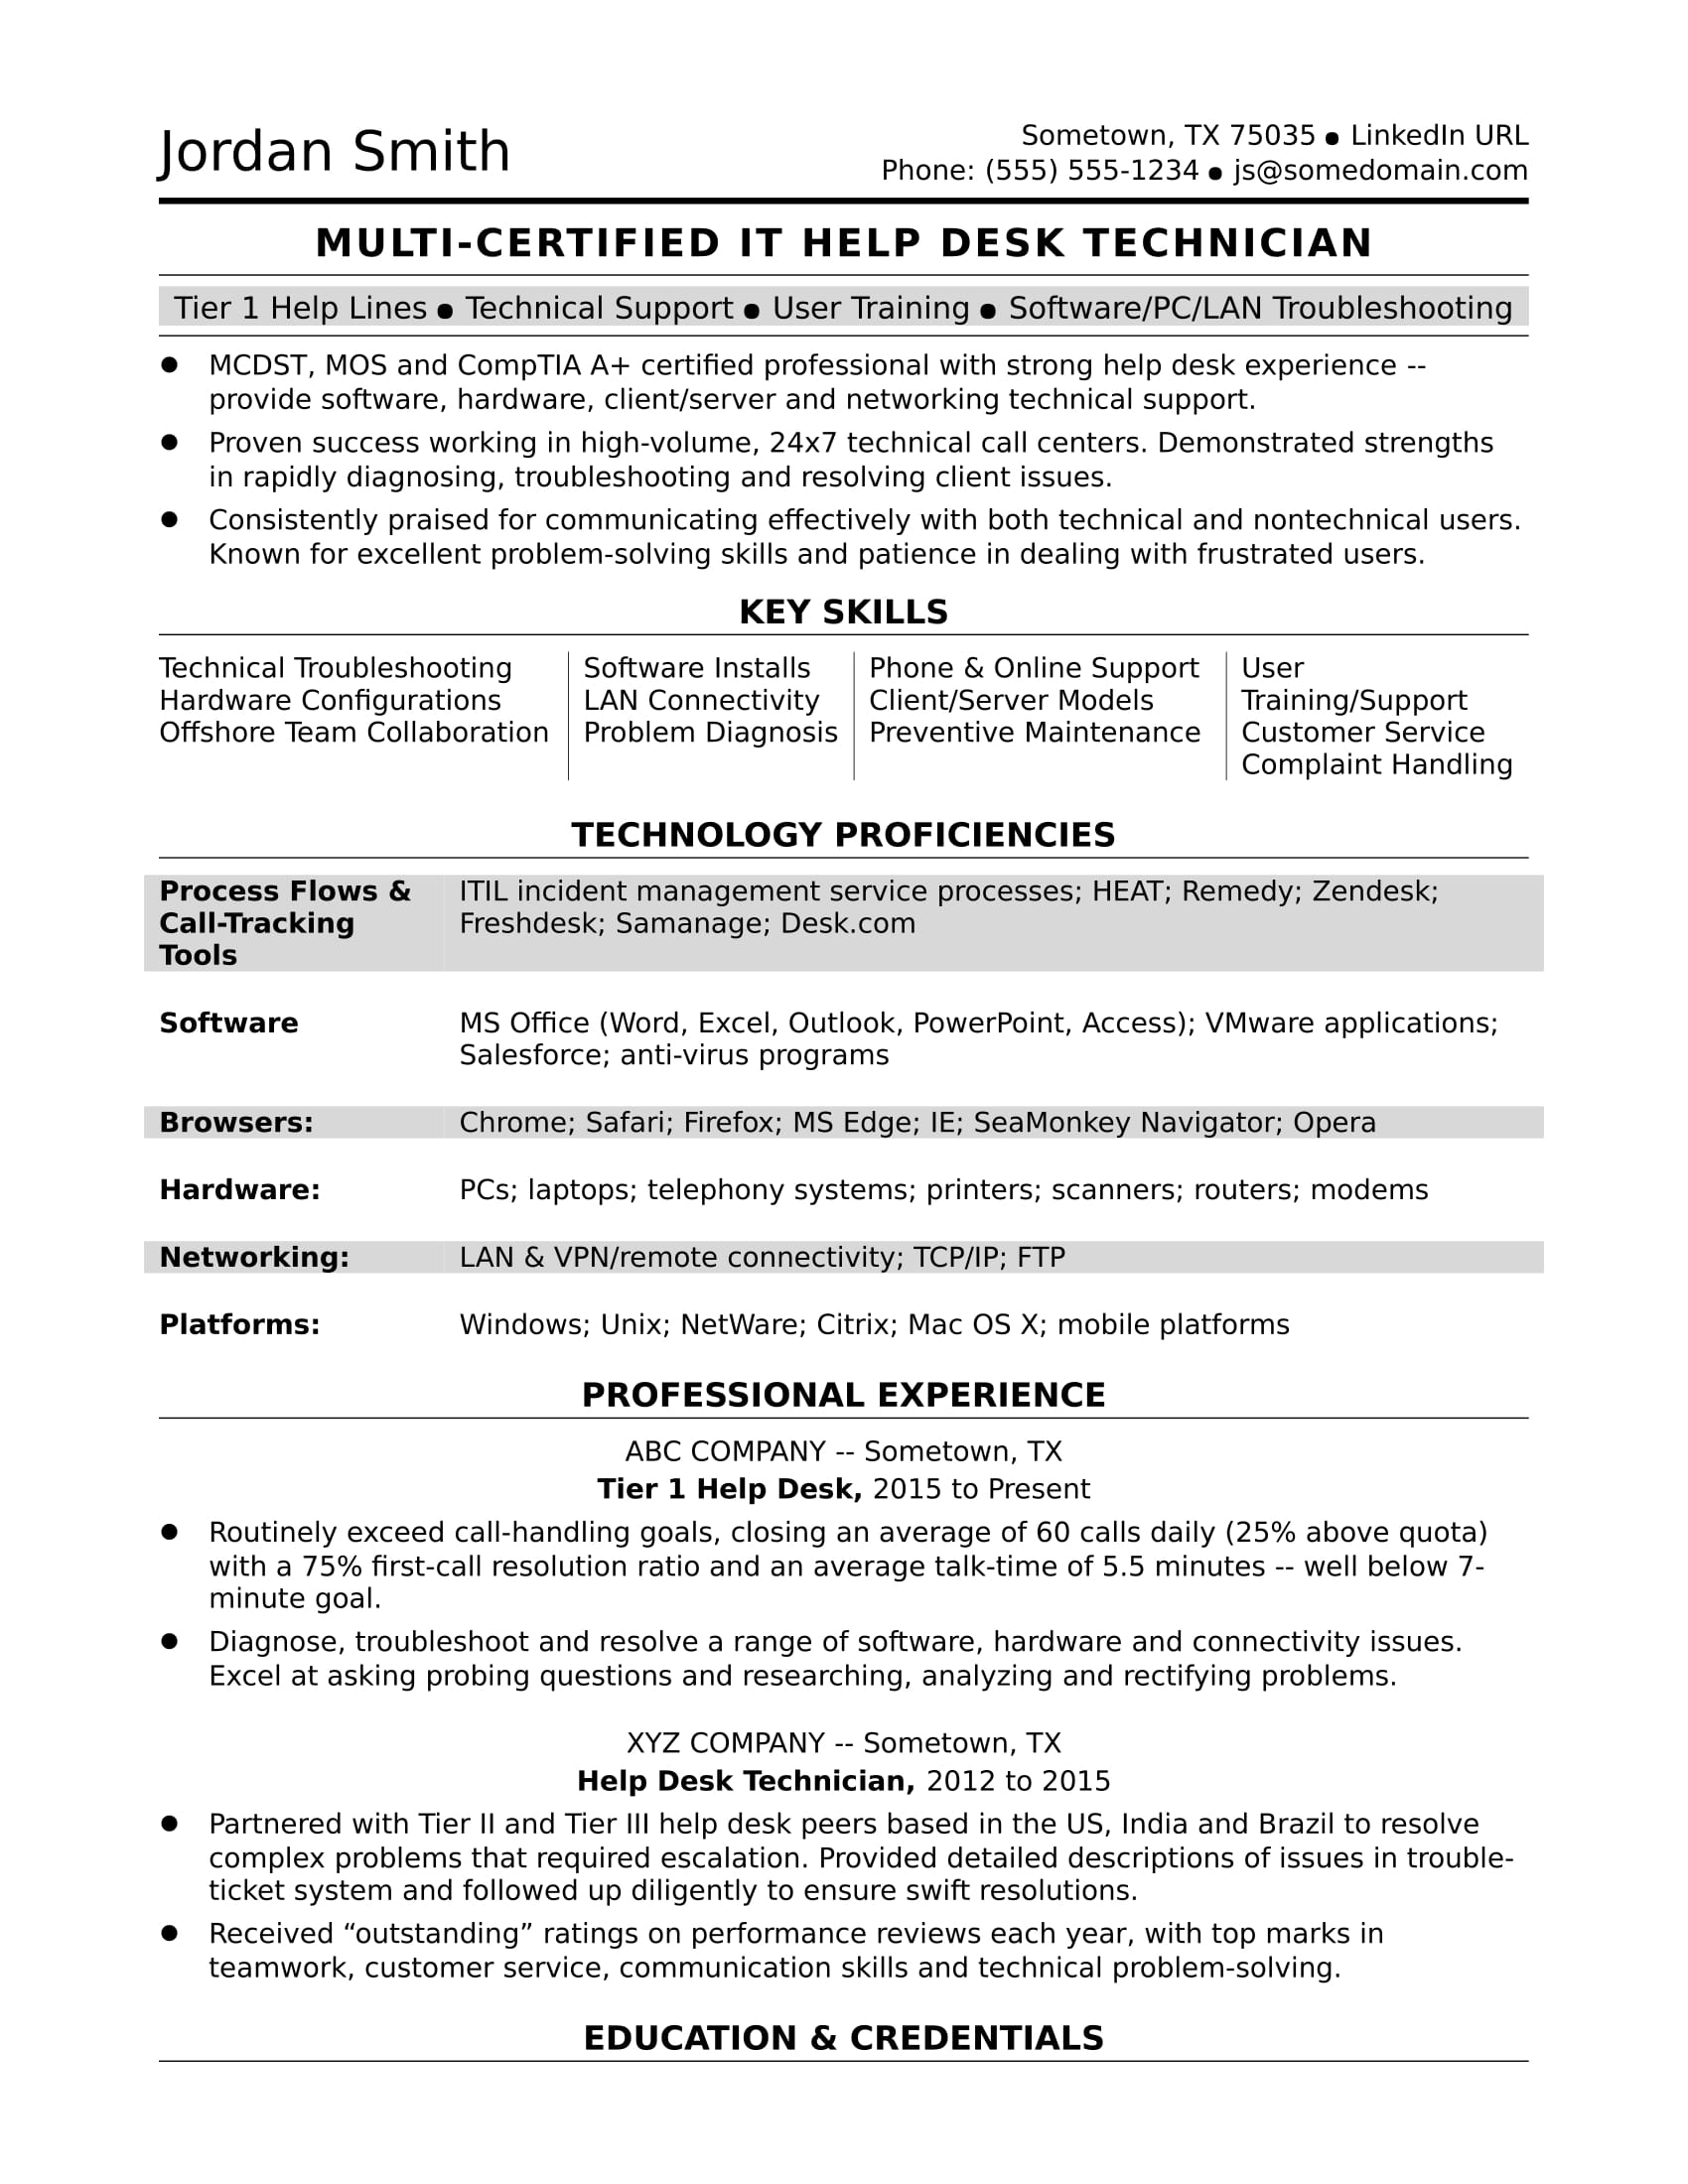 sample resume for midlevel it help desk professional monster hardware and networking Resume Sample Resume For Hardware And Networking Engineer